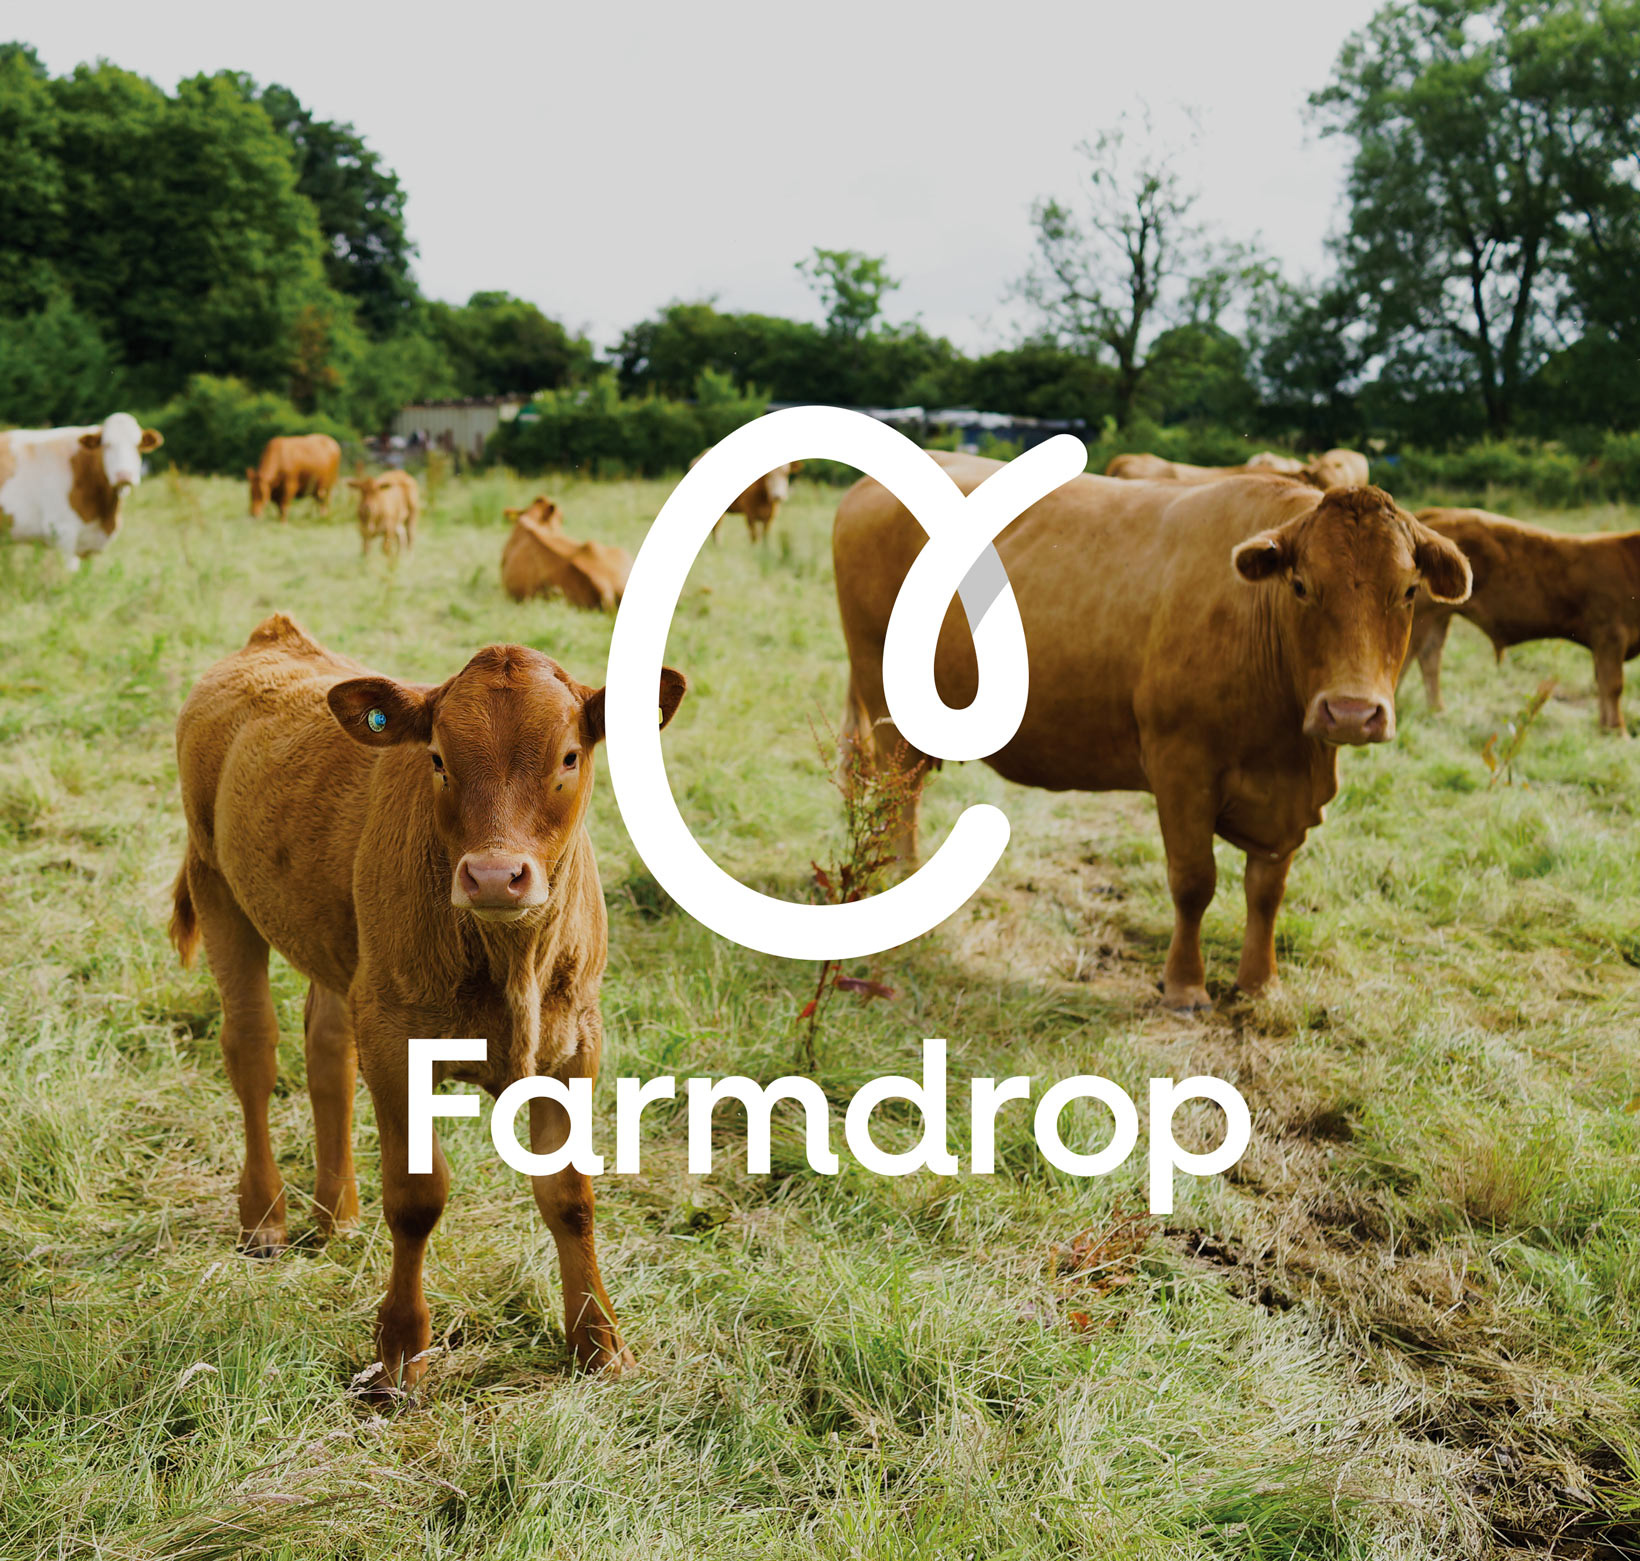 New Logo and Identity for Farmdrop by Confederation Studio and In-house